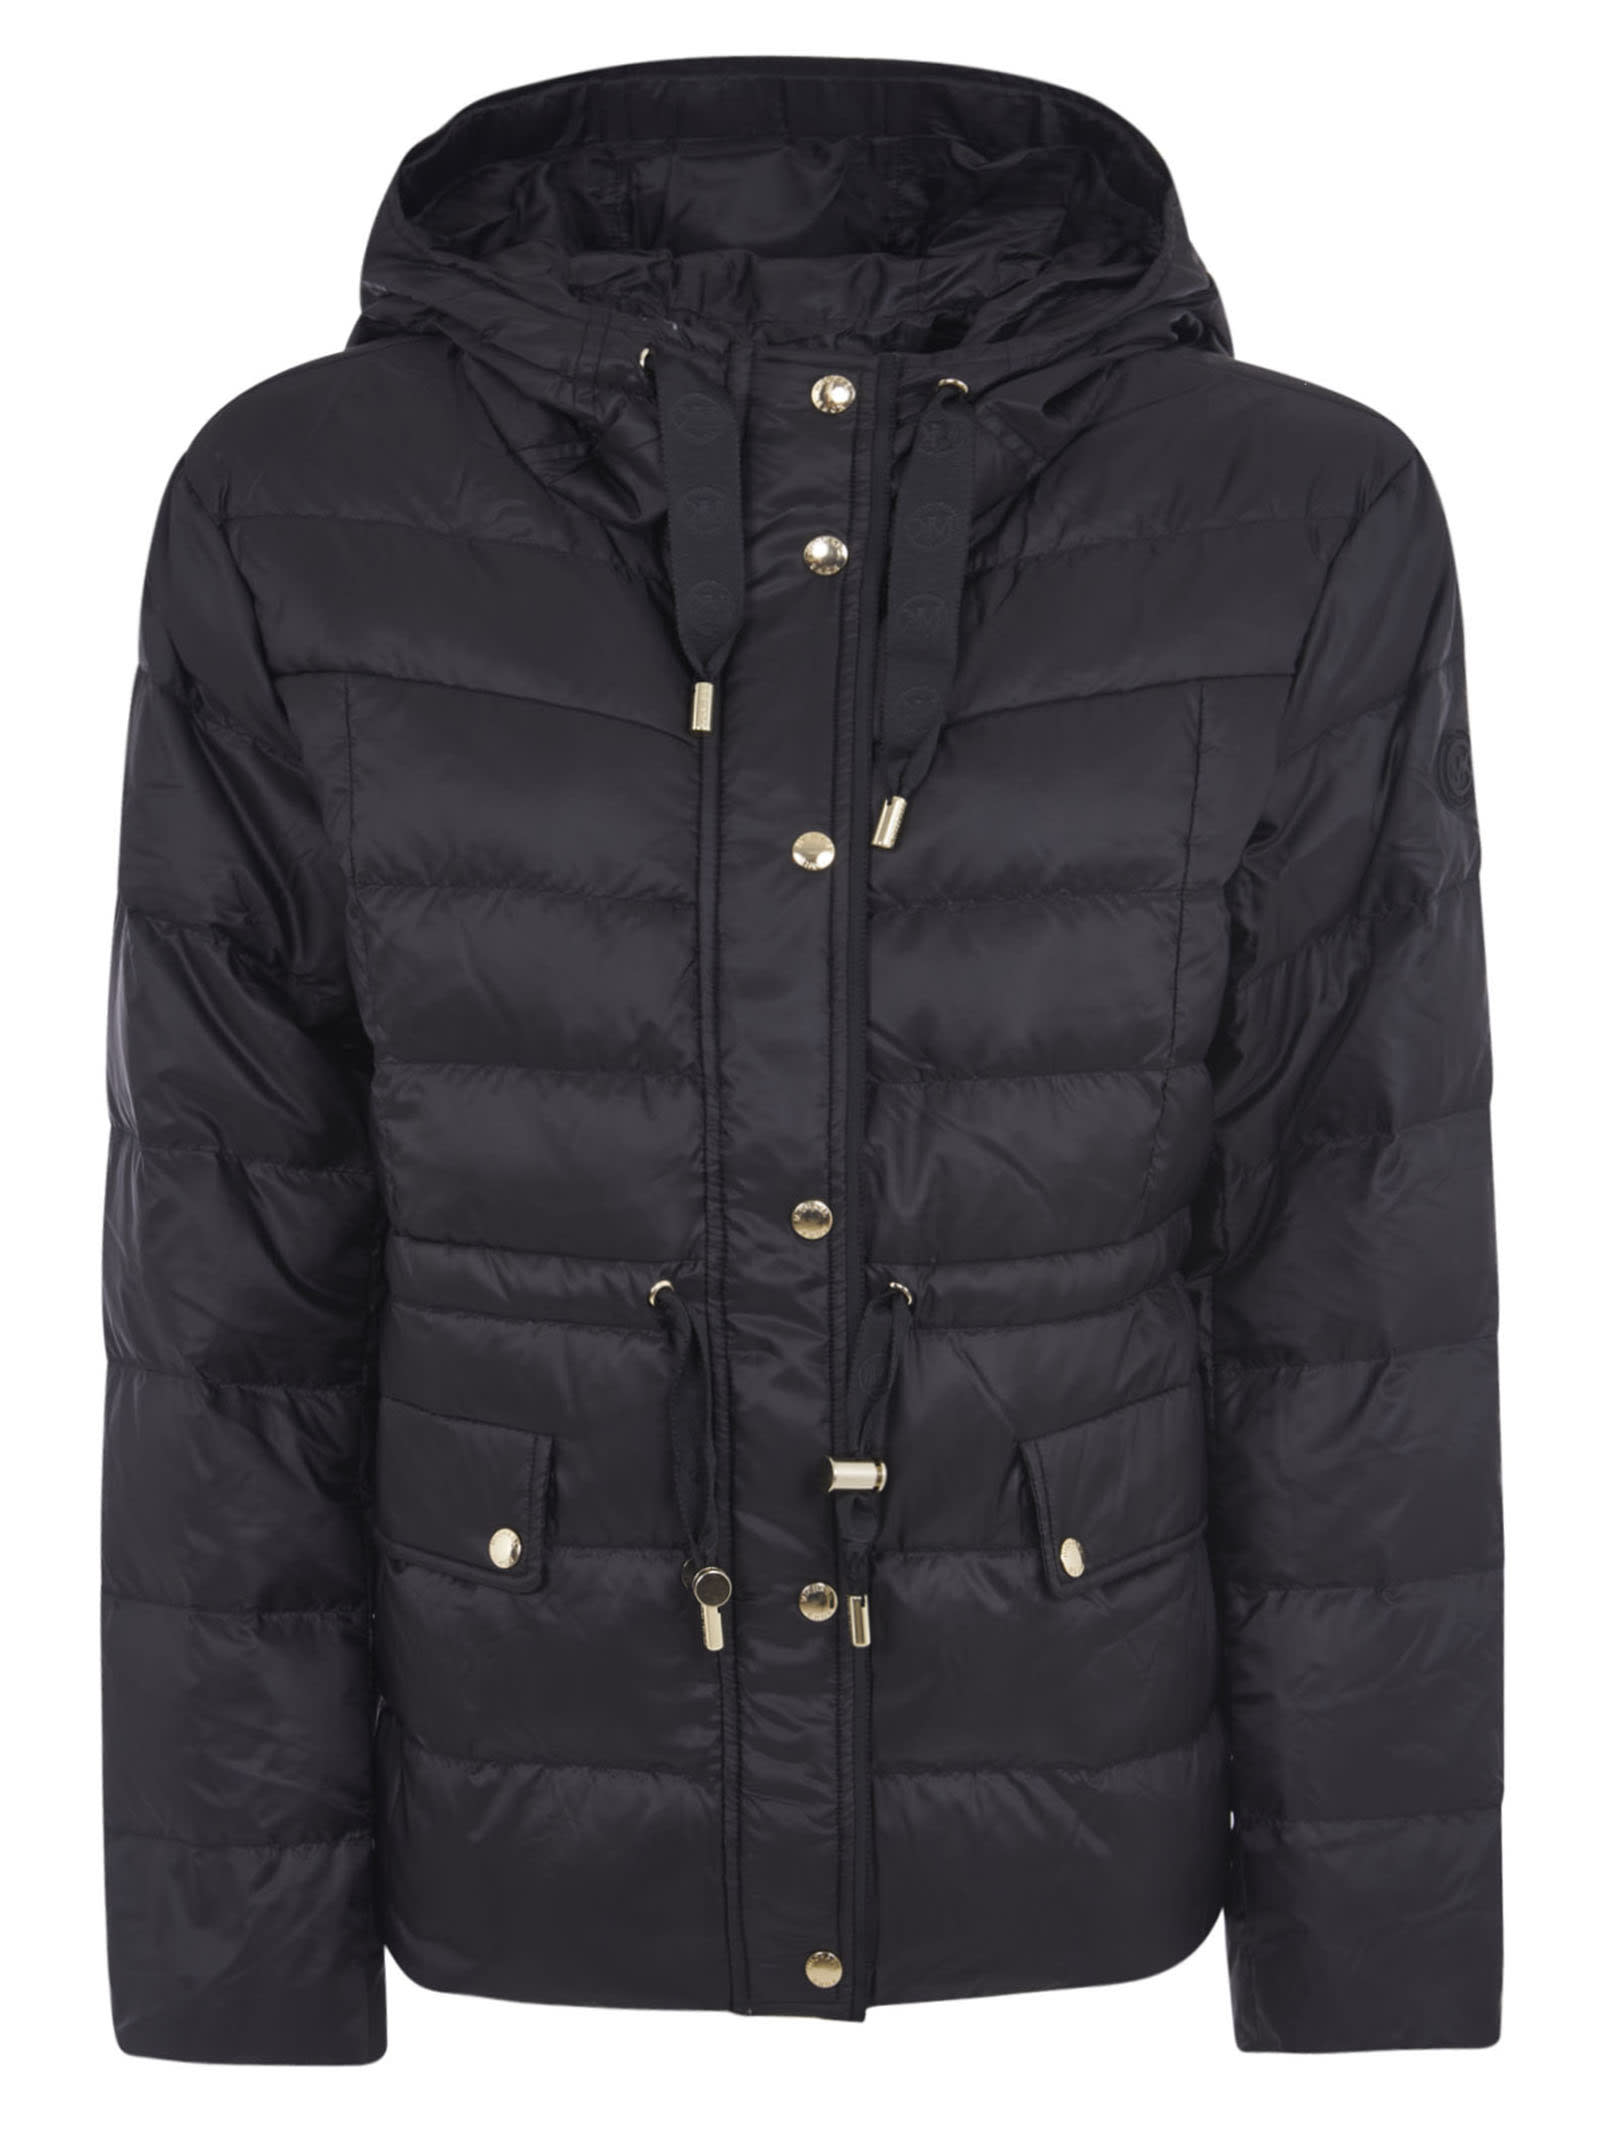 Michael Kors BUTTONED PADDED JACKET